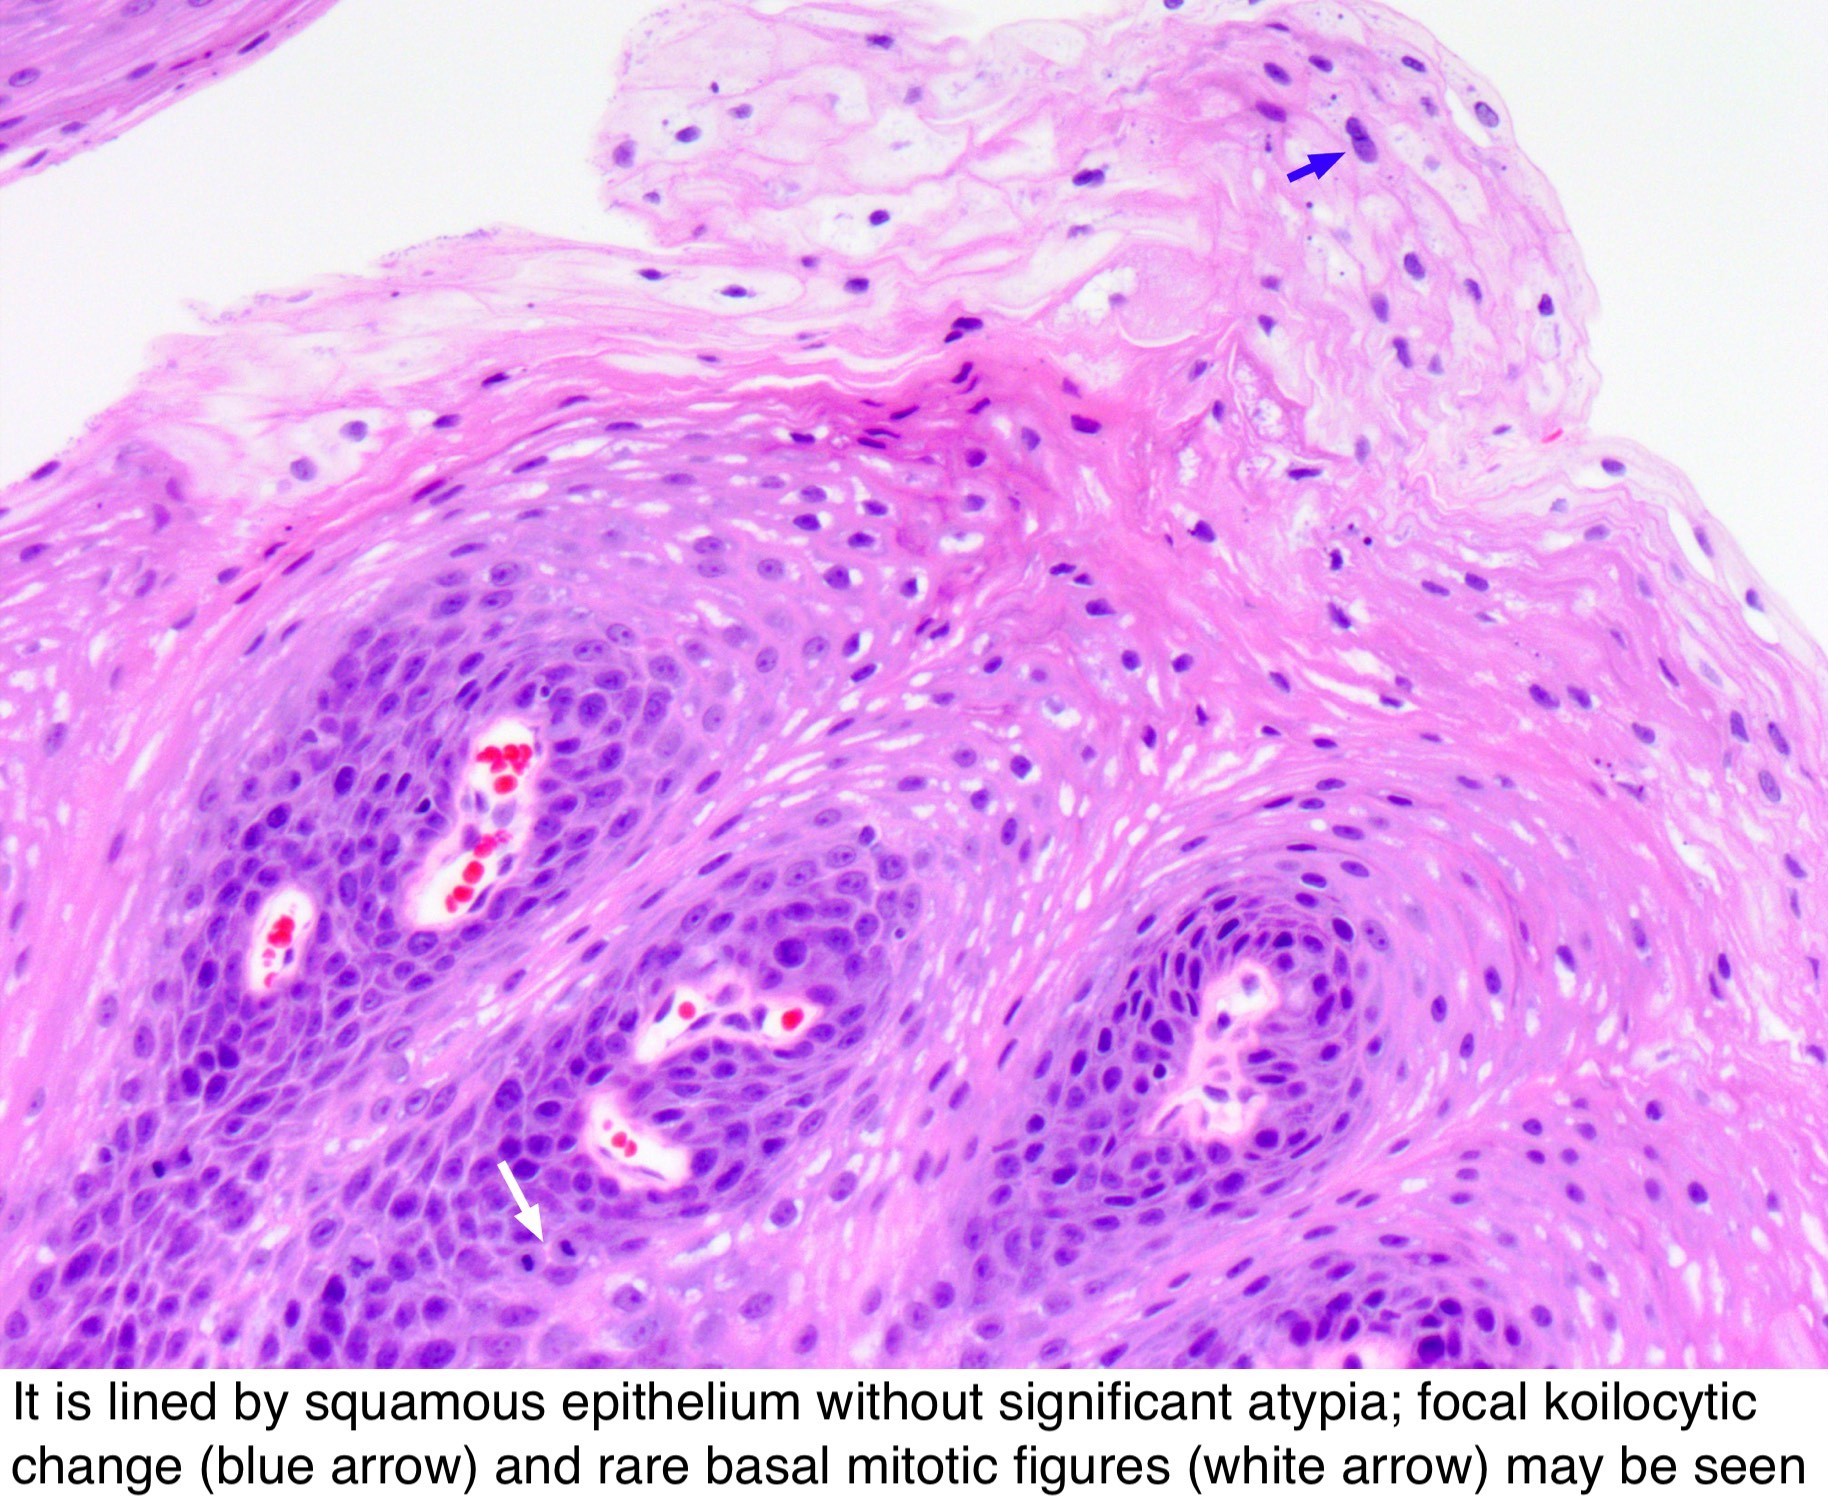 Intraductal papilloma with focal atypical ductal hyperplasia, Cancer en hodgkin